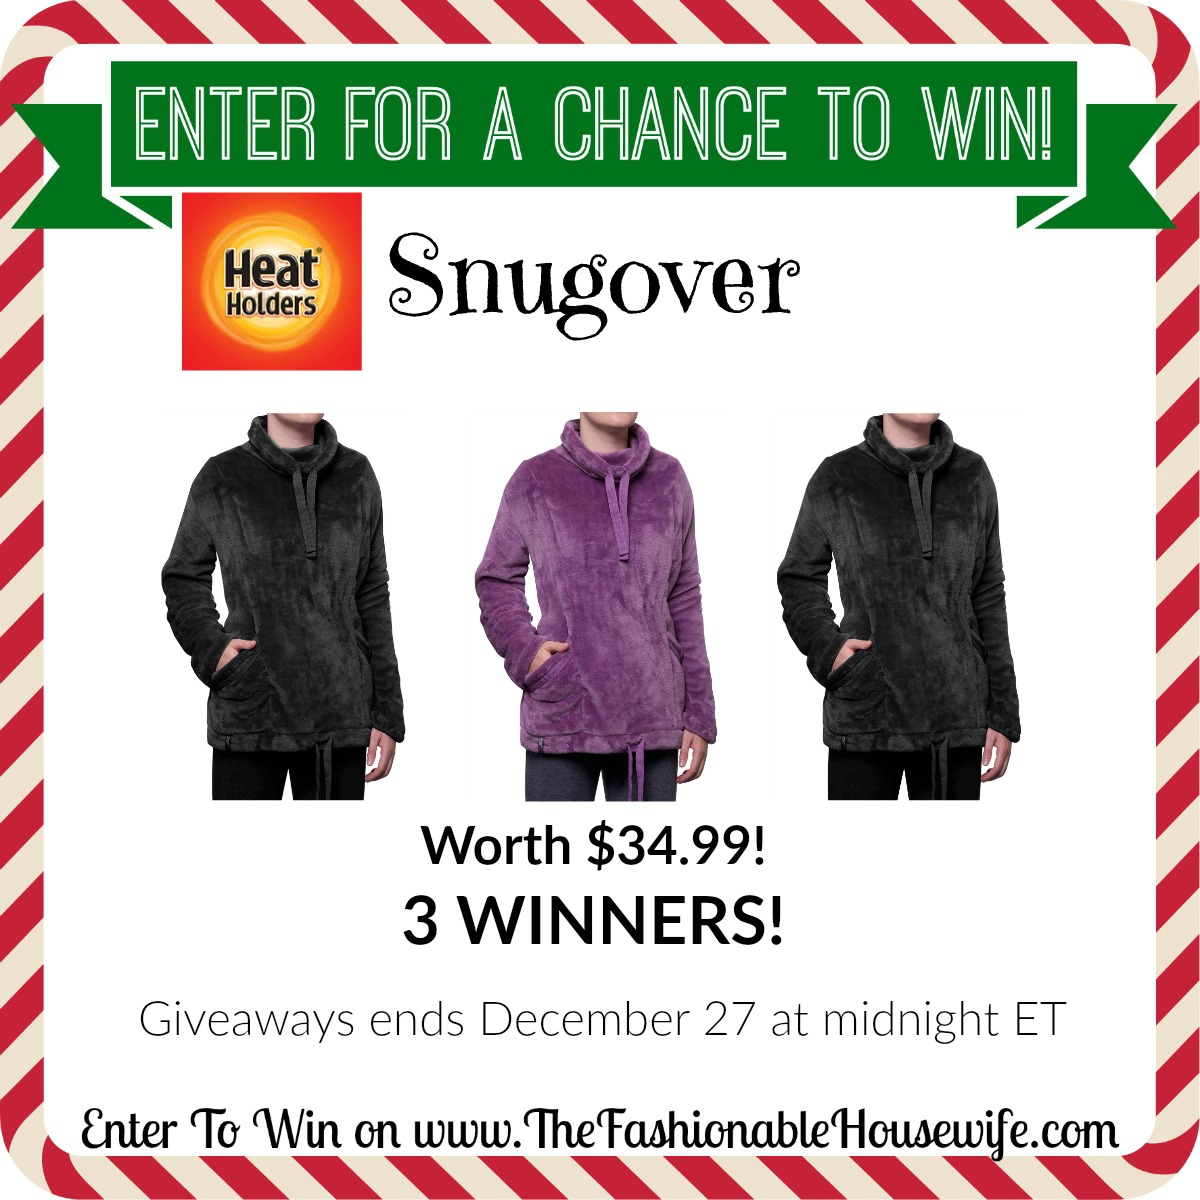 Enter To Win Heat Holders Snugover